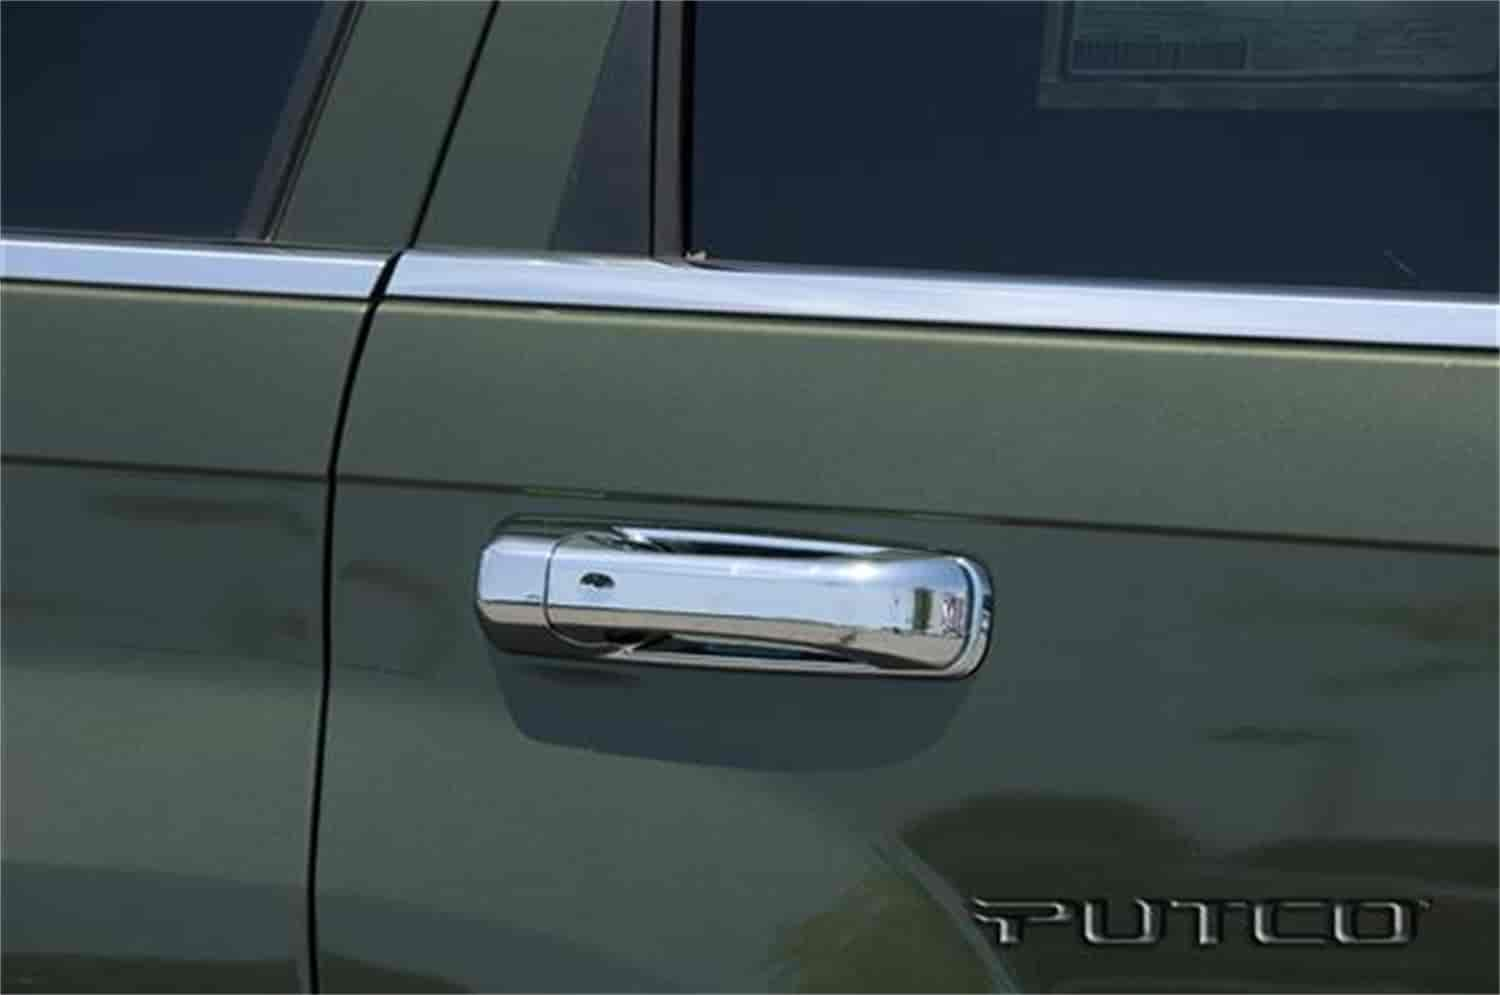 CCI CCIDH68130B - CCI Chrome Door Handle Covers